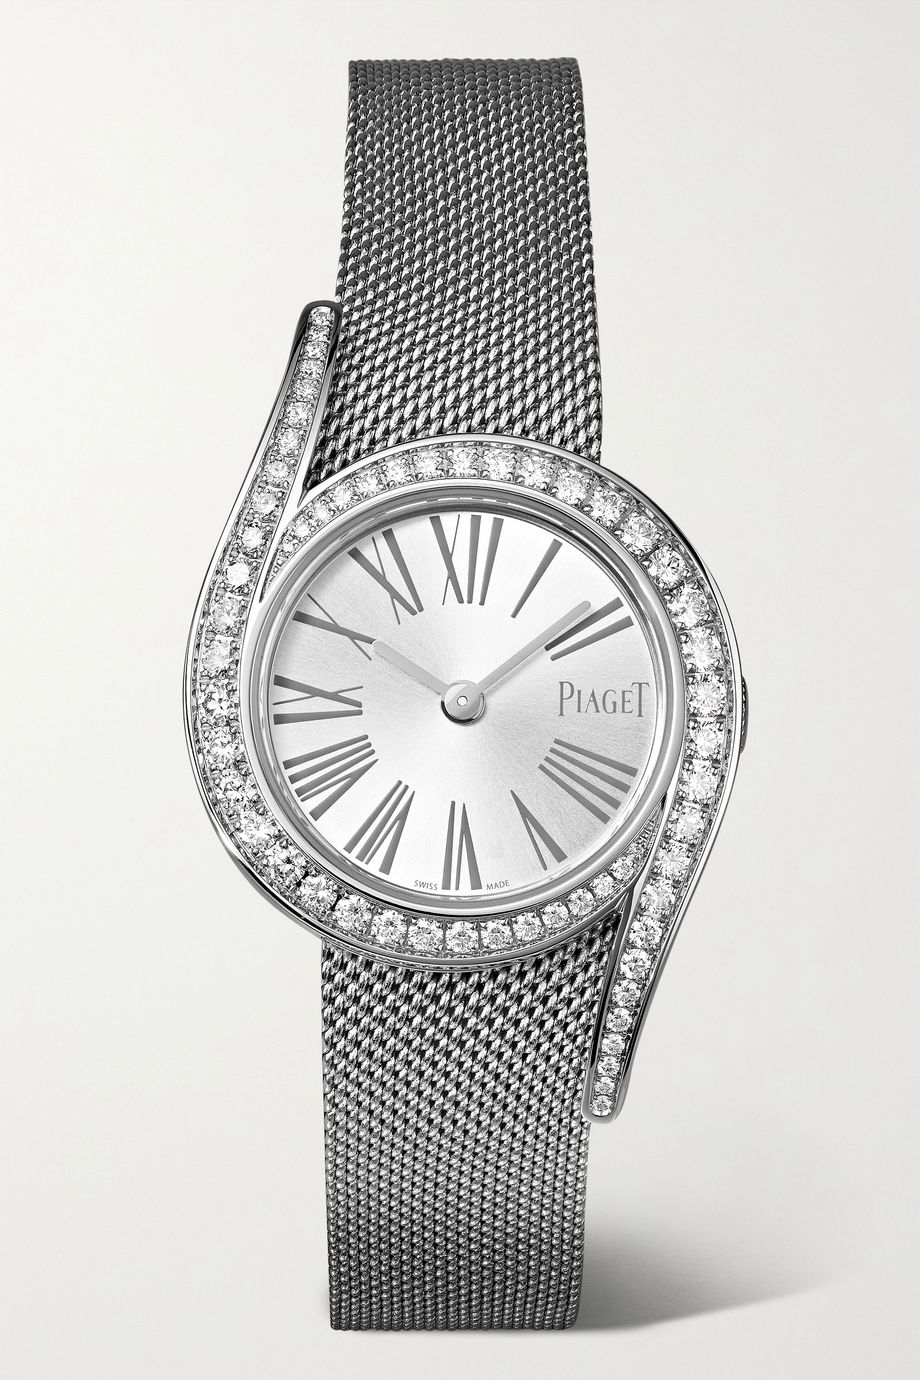 Piaget Limelight Gala 26mm 18-karat white gold and diamond watch